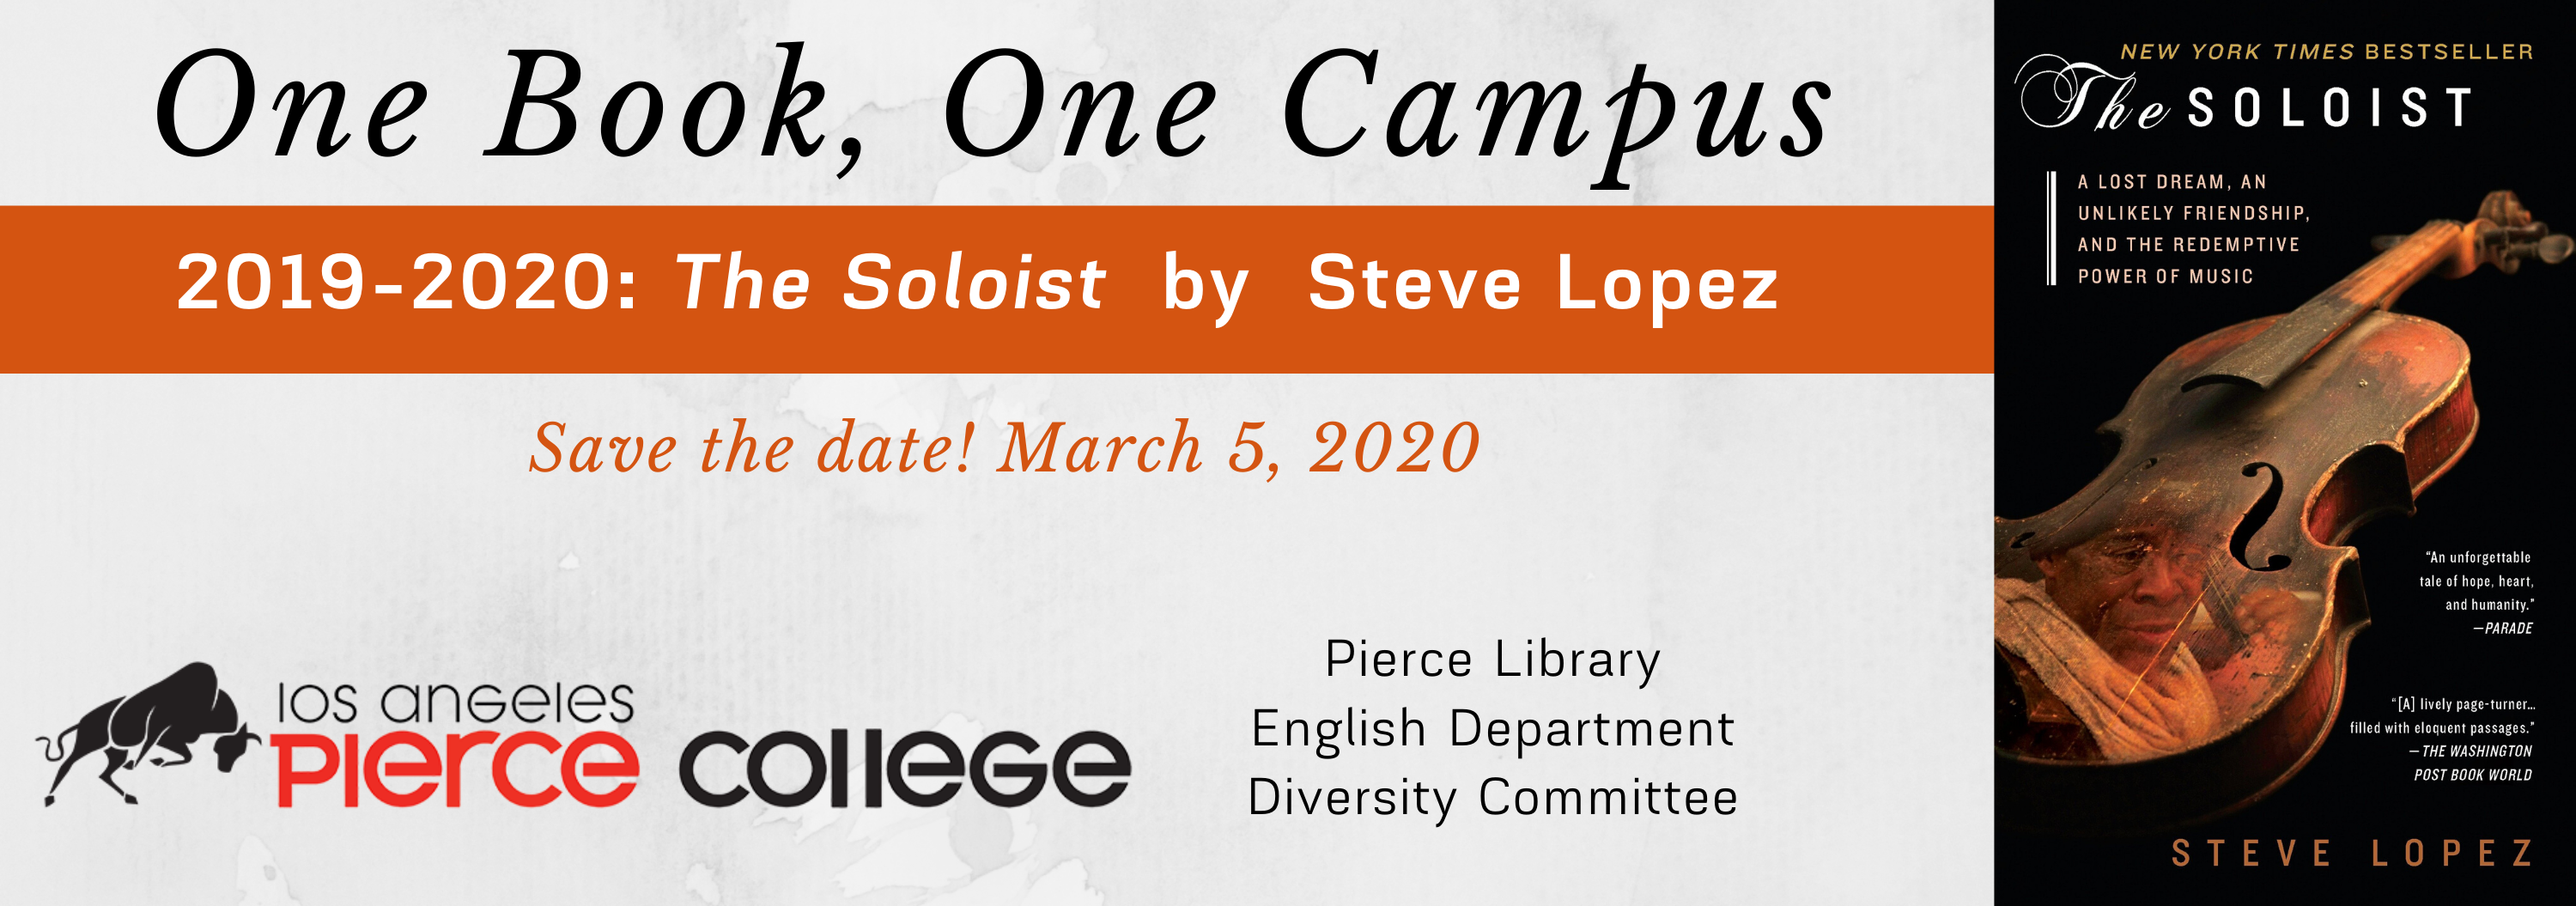 One Book One Campus selections is The Soloist by Steve Lopez